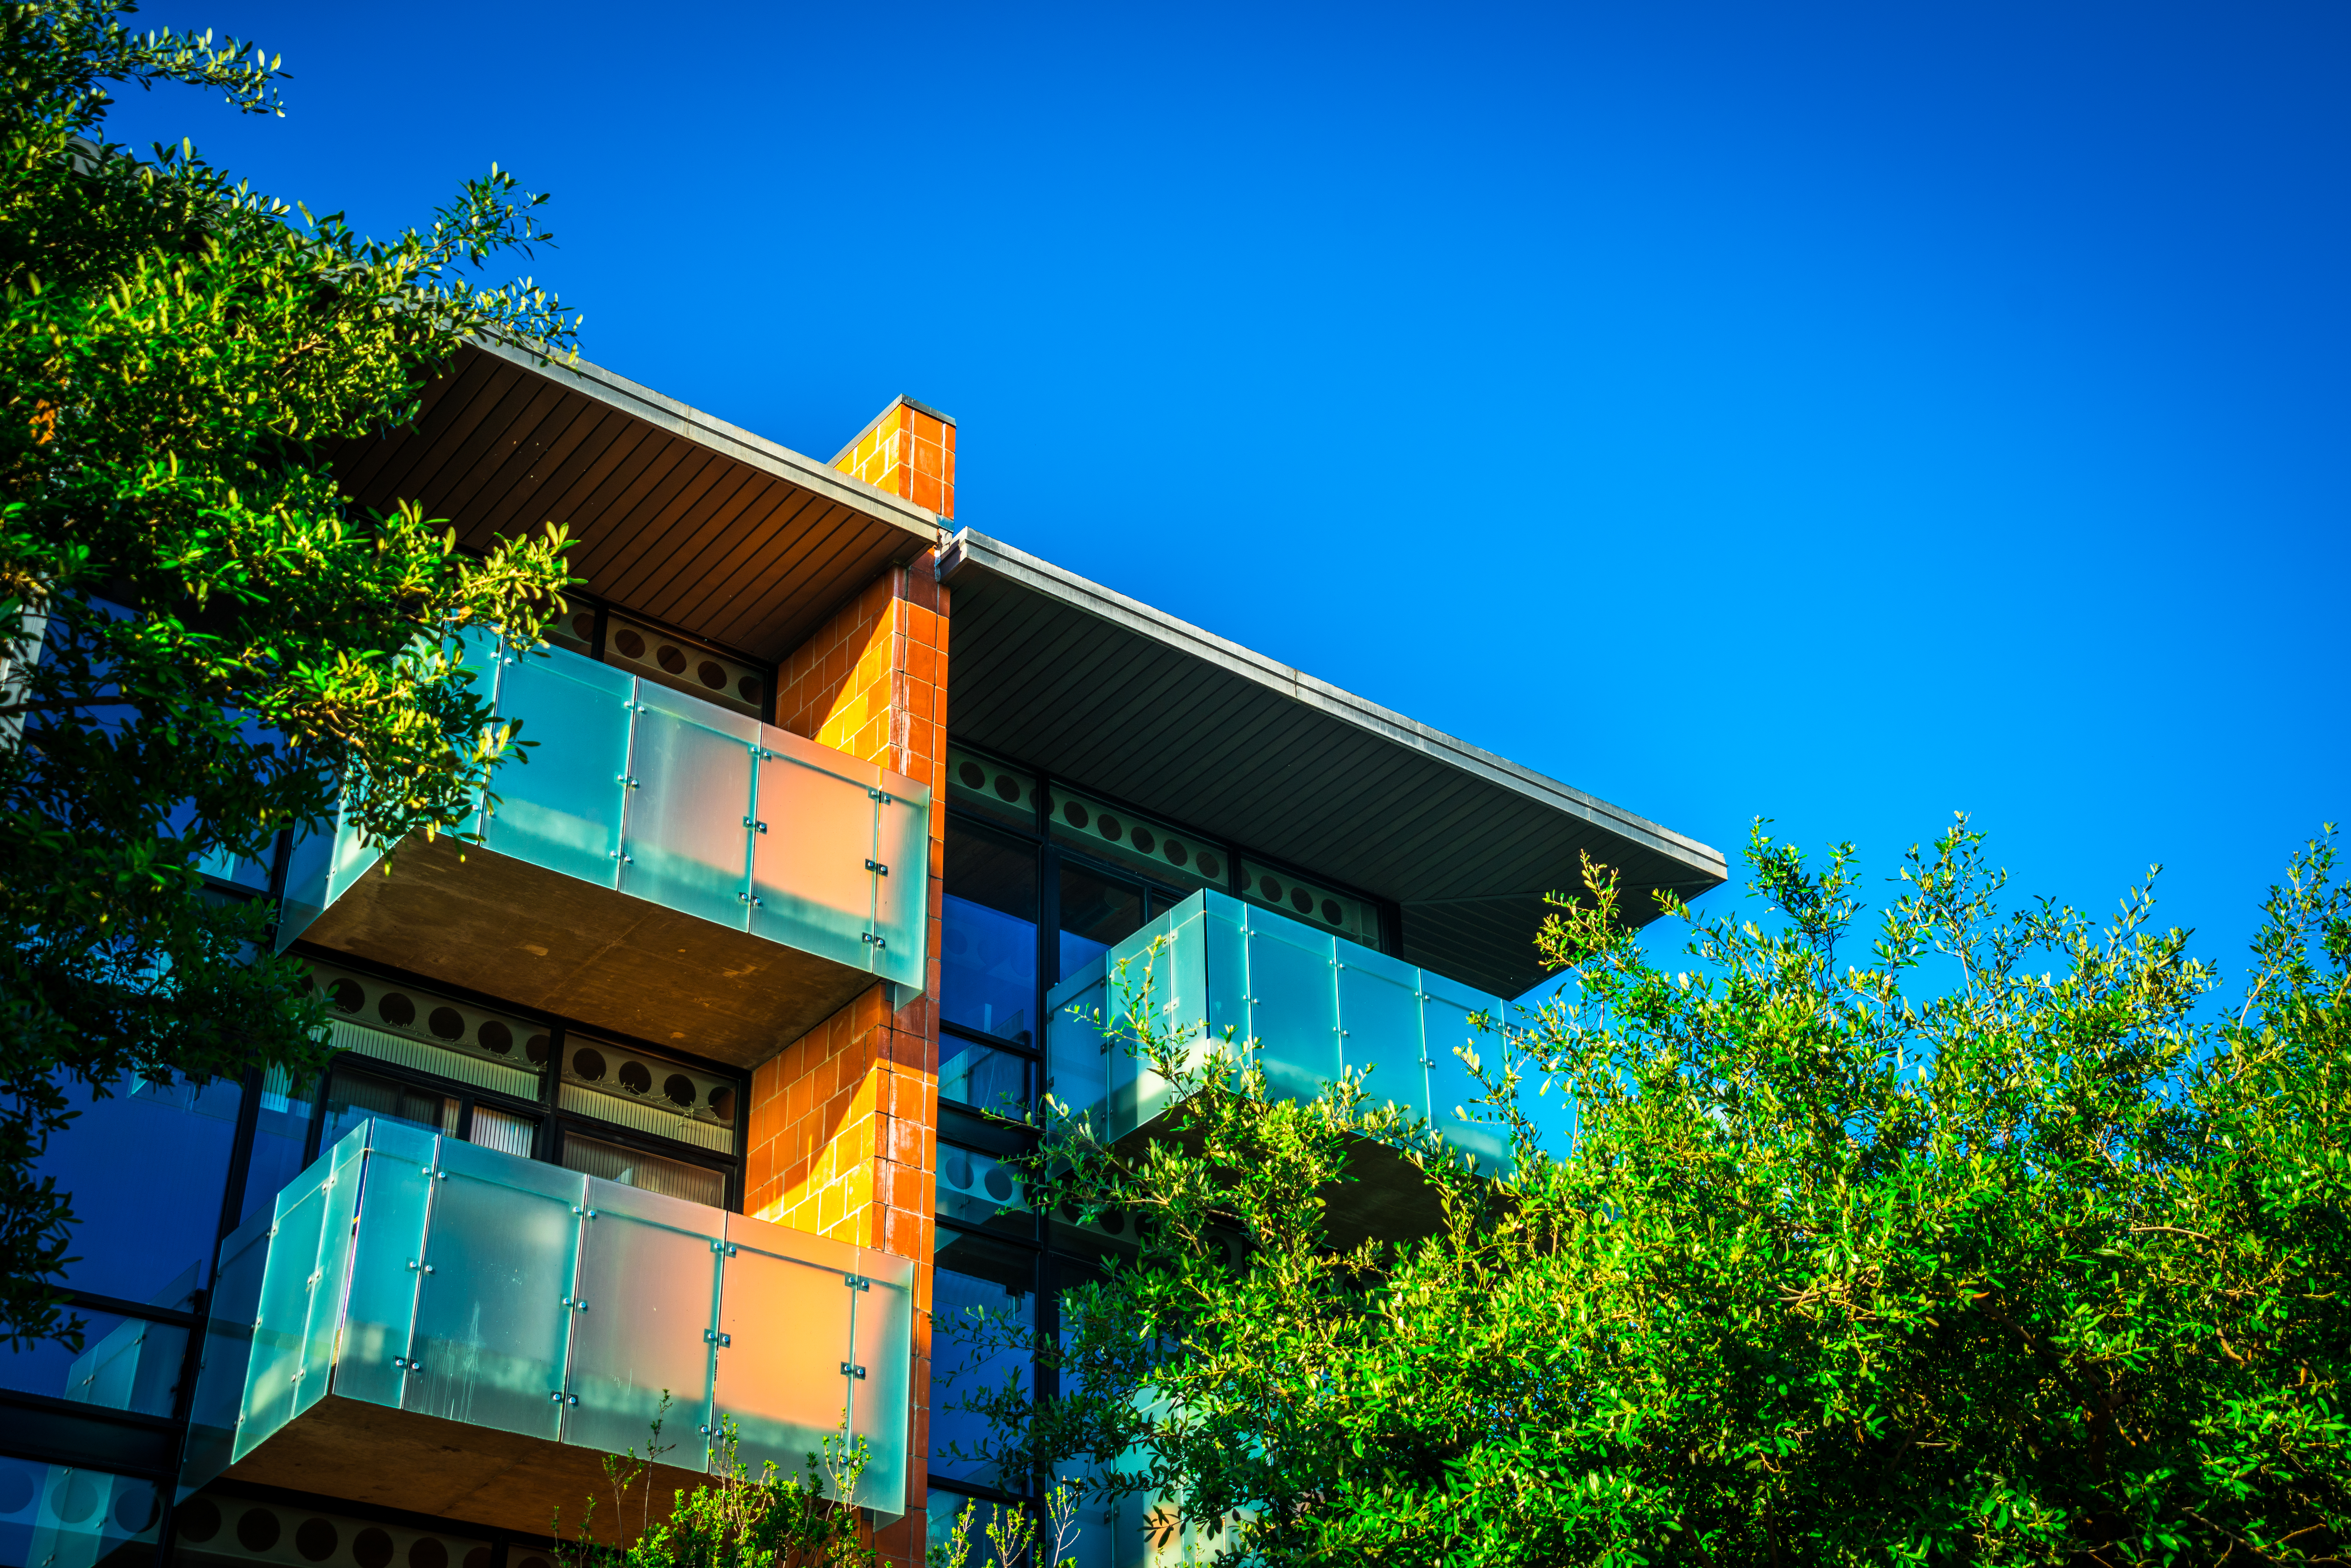 Upward-angled photograph of the top corner of a contemporary apartment building. The apartments have balconies with perforated steel railings, with a vertical brick wall dividing them. There's a blue sky in the background and leafy trees in front.